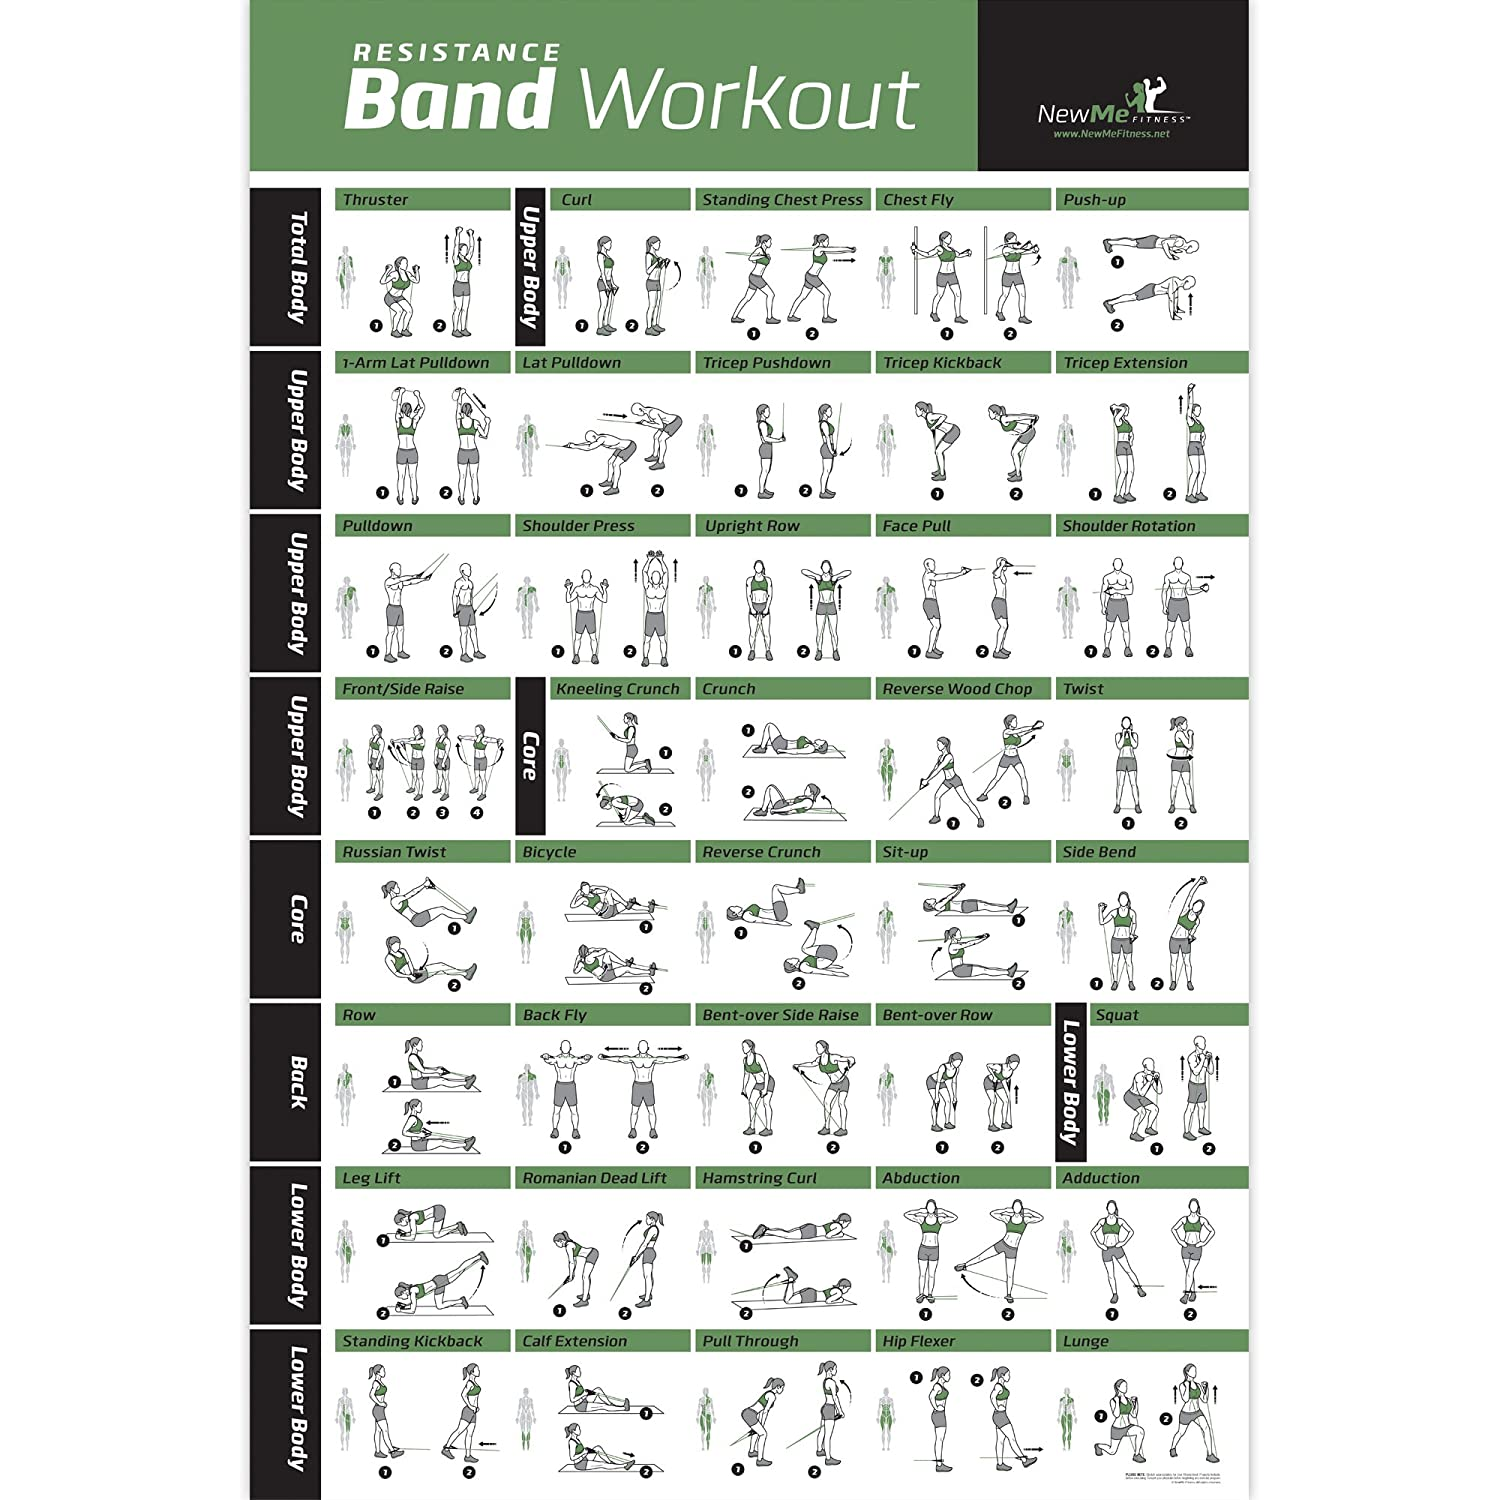 Resistance Band/Tube Exercise Poster Laminated - Total Body Workout Personal Trainer Fitness Chart - Home Fitness Training Program for Elastic Rubber Tubes and Stretch Band Sets